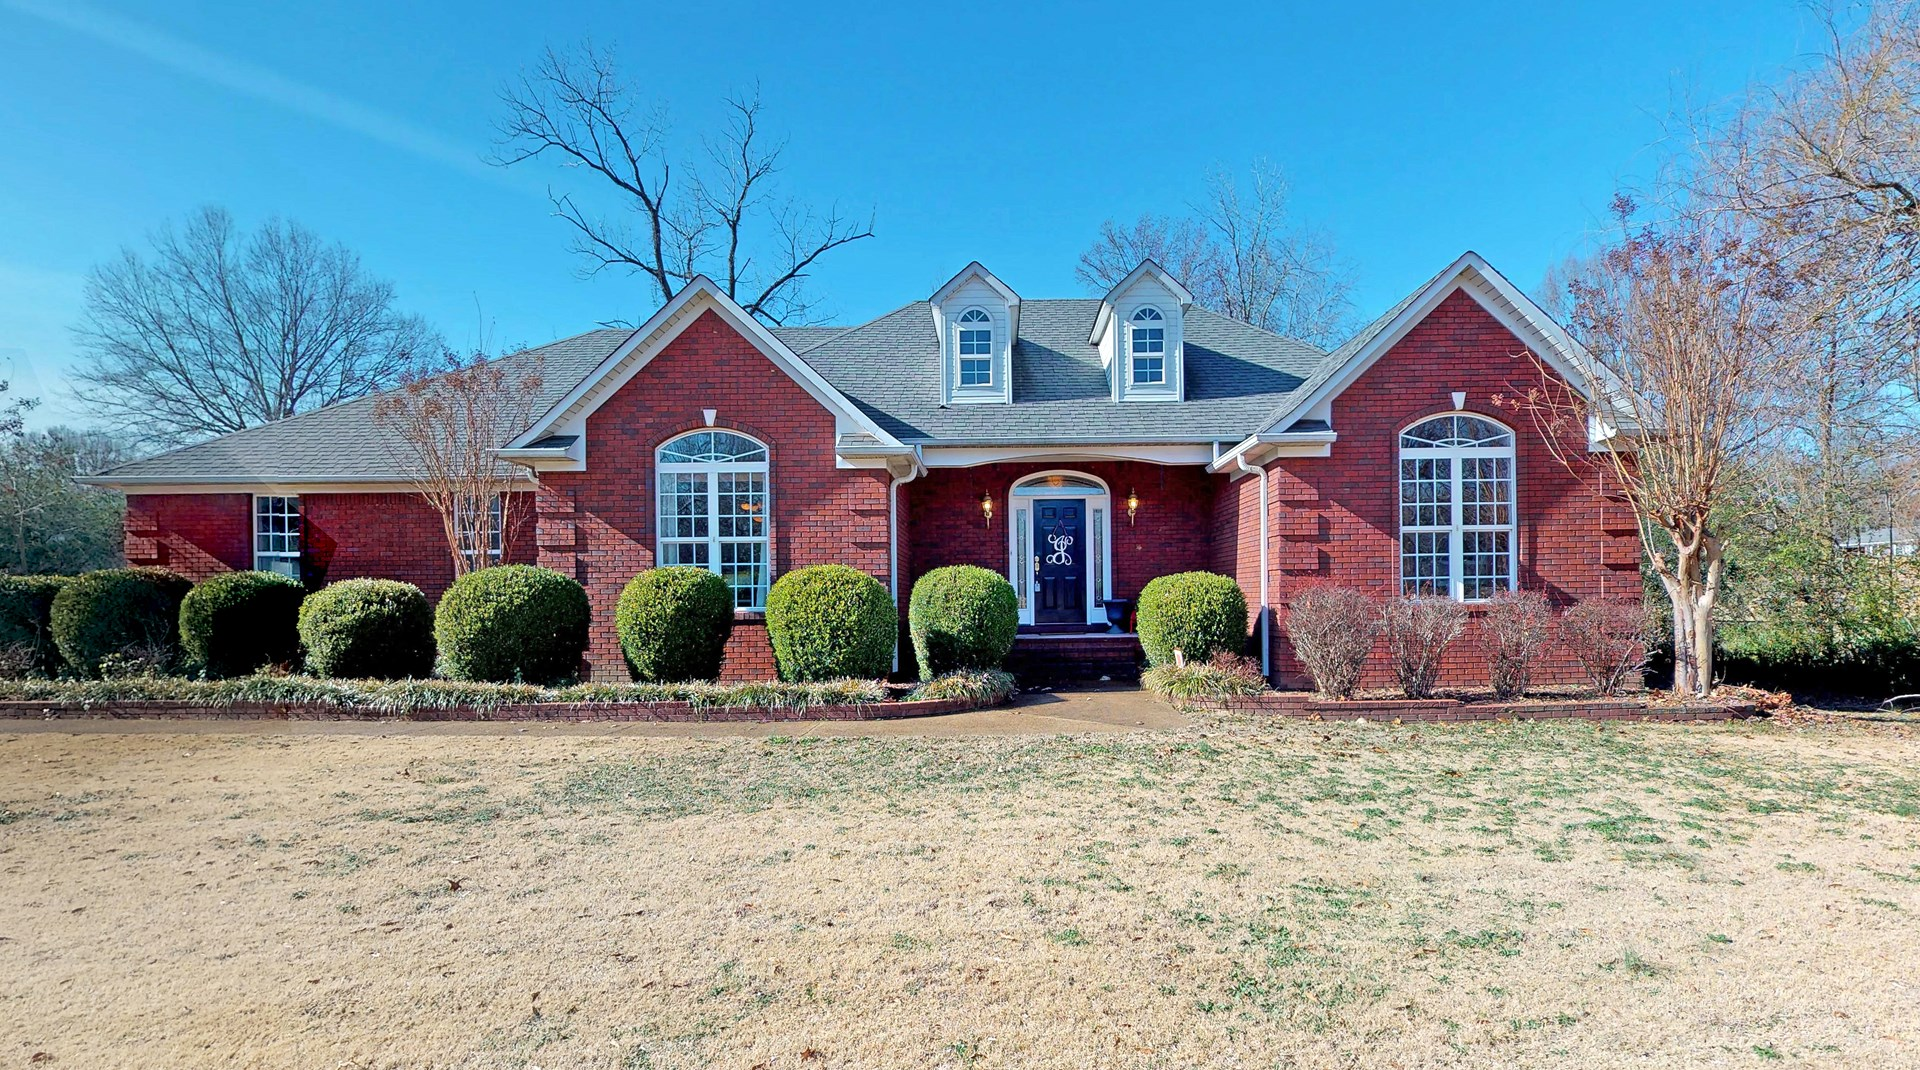 Brick Home on Corner Lot, Desirable Location in Milan, TN